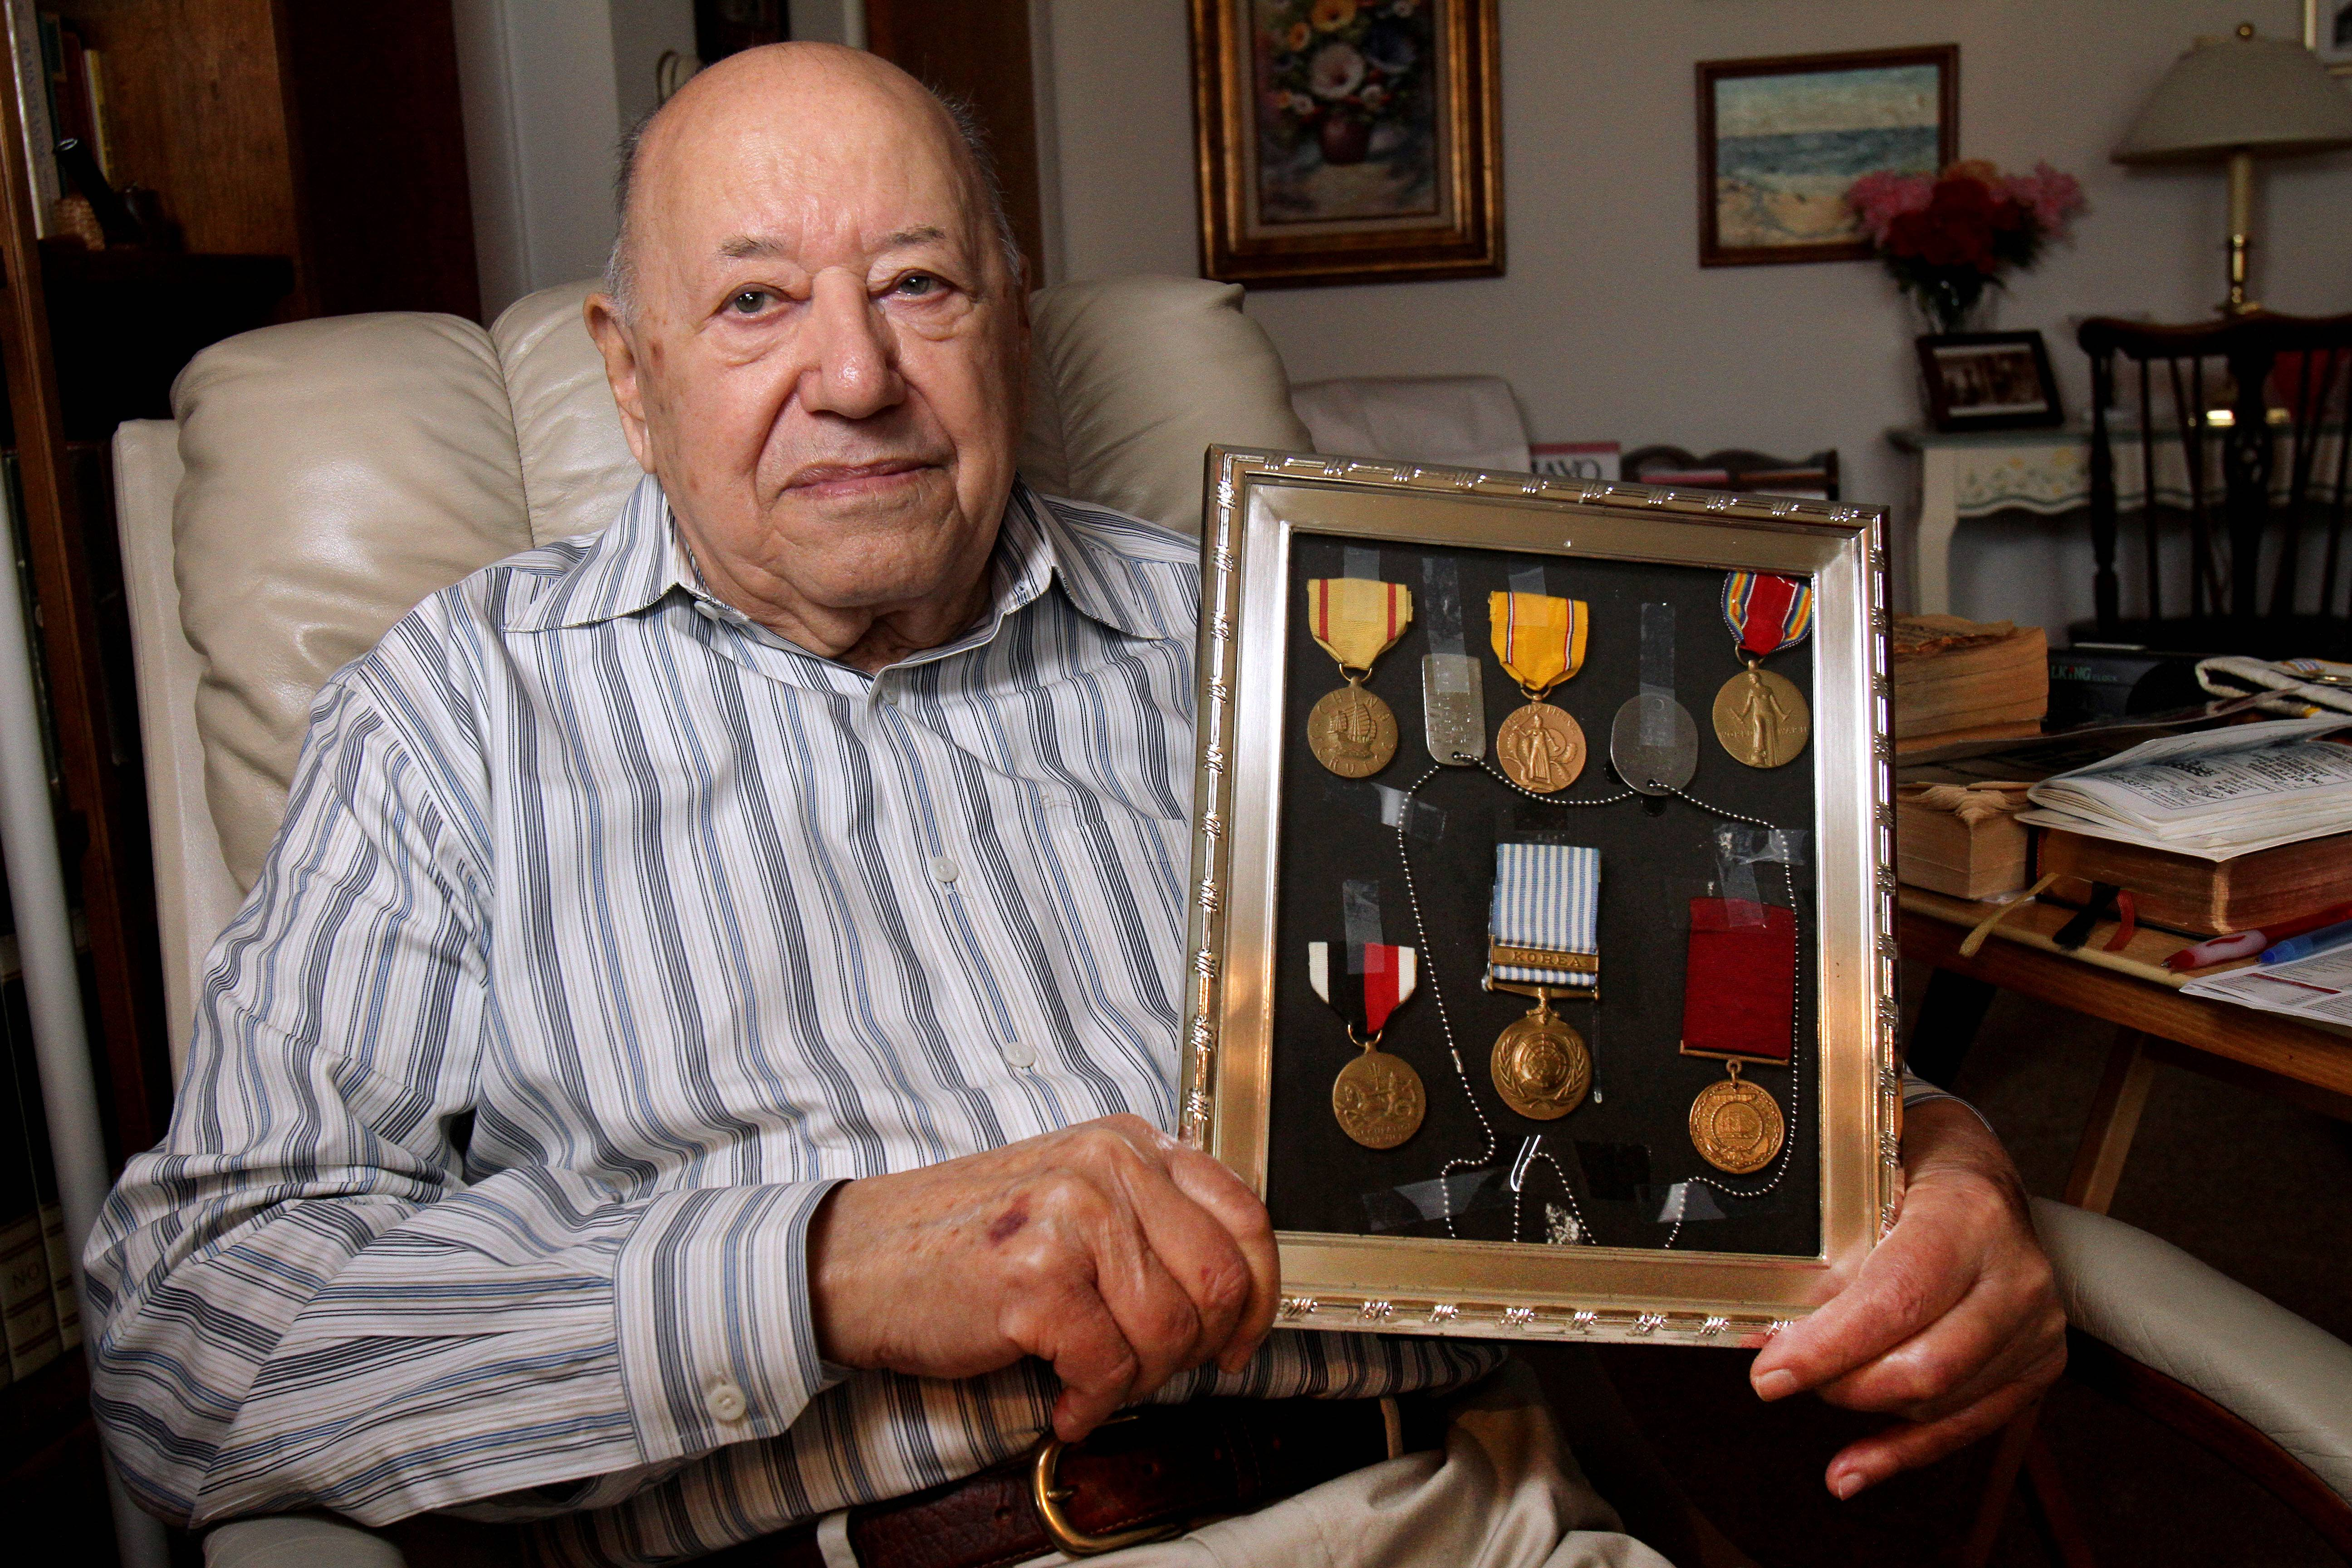 Pearl Harbor attack survivor Joe Triolo holds medals he earned while serving in World War II and Korea.